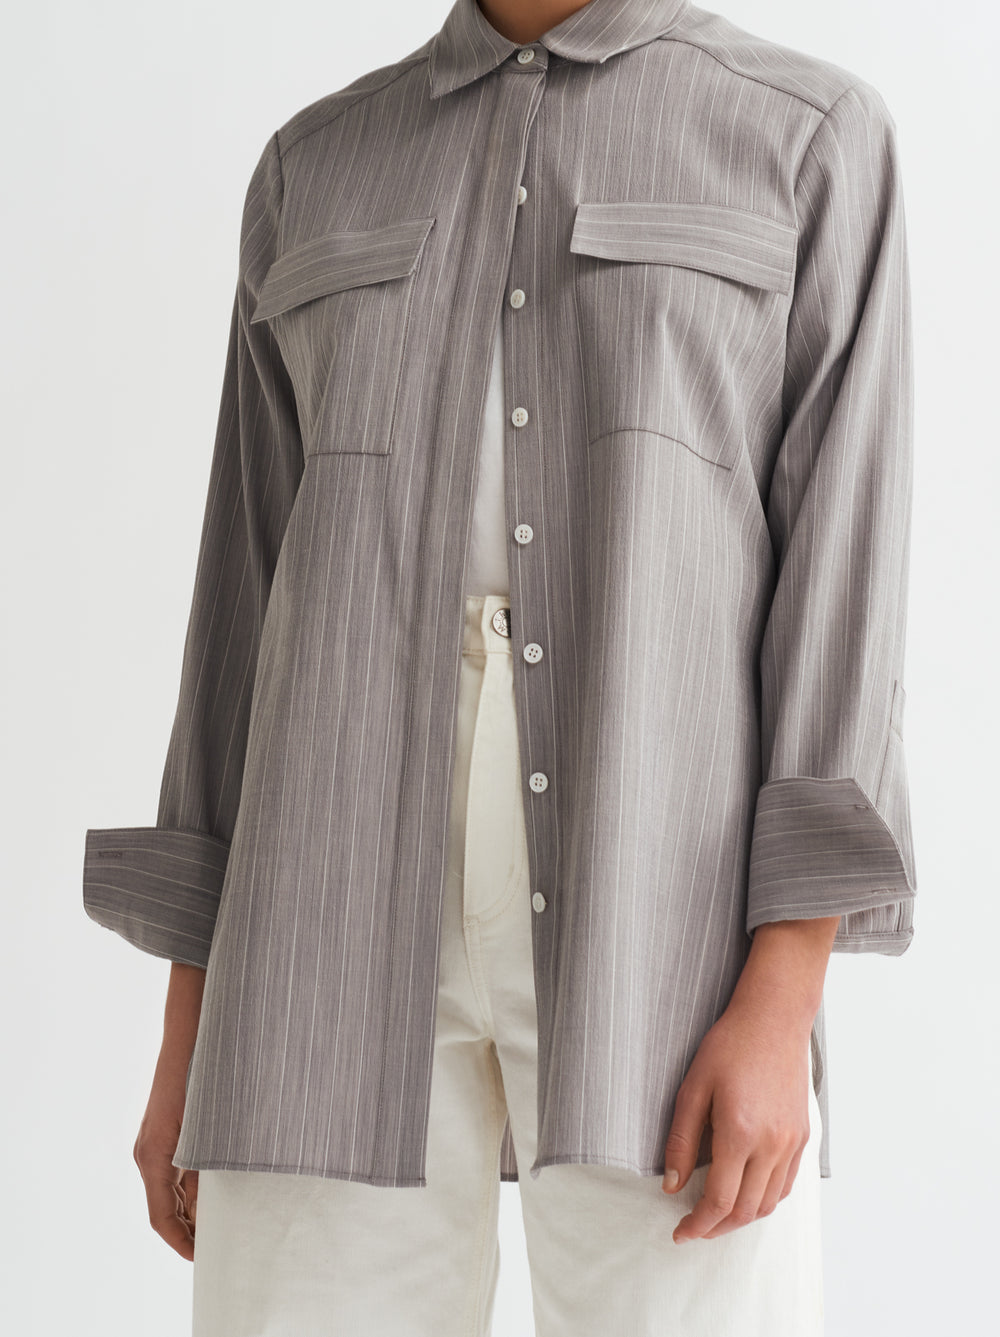 Antonella Grey Pinstripe Shirt by KITRI Studio